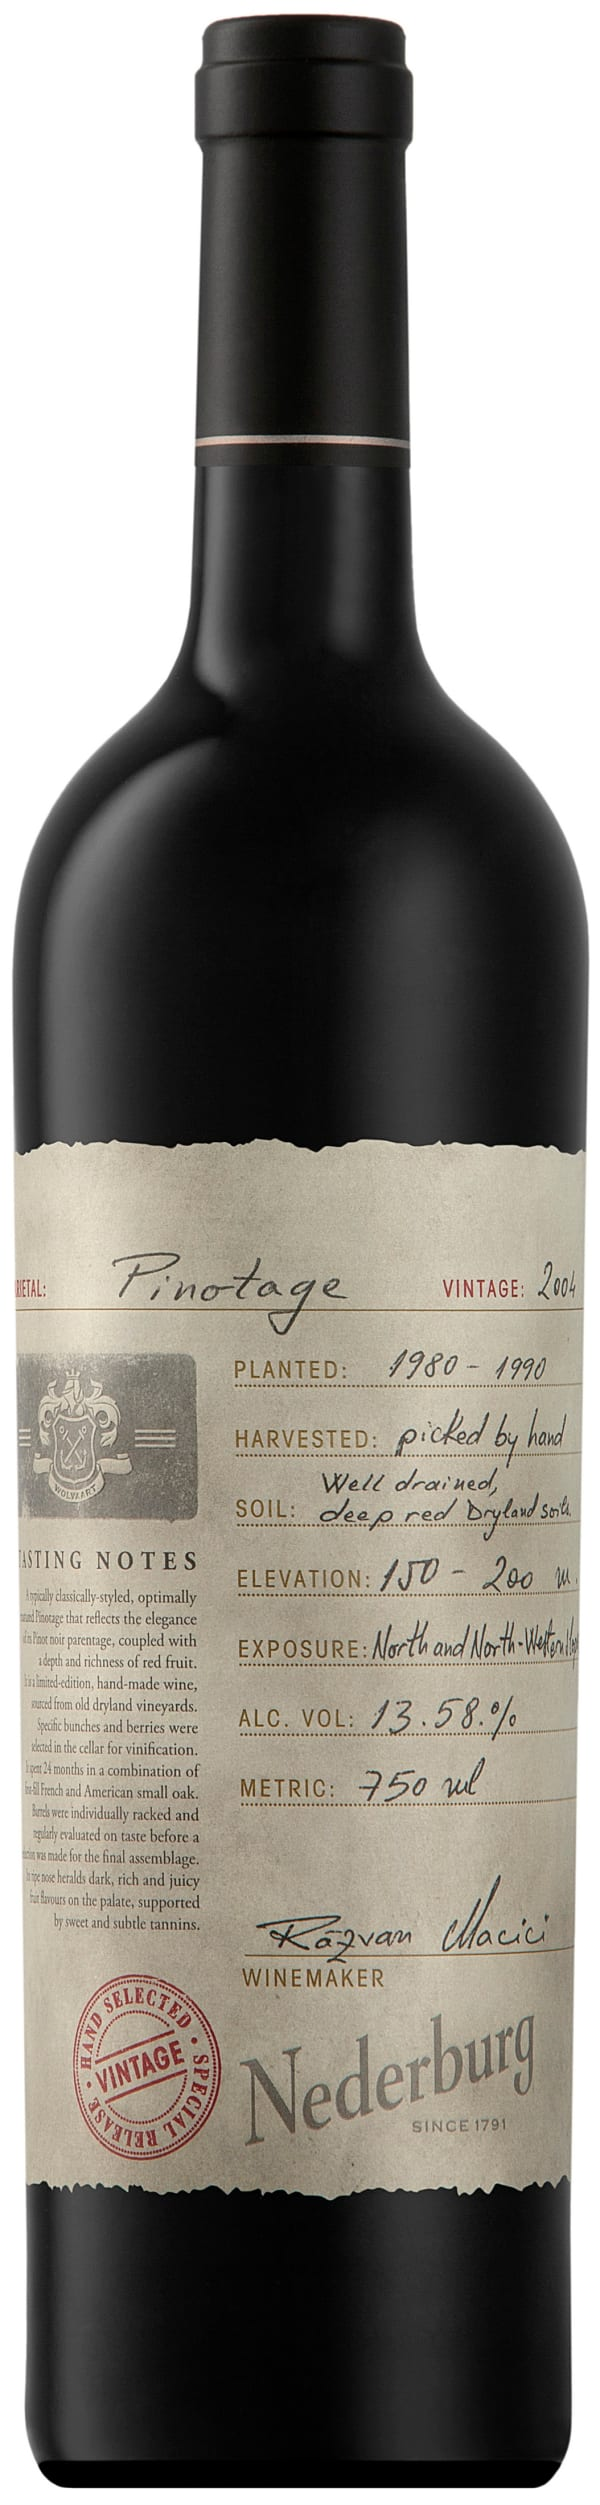 Nederburg Hand Selected Special Release Pinotage 2004